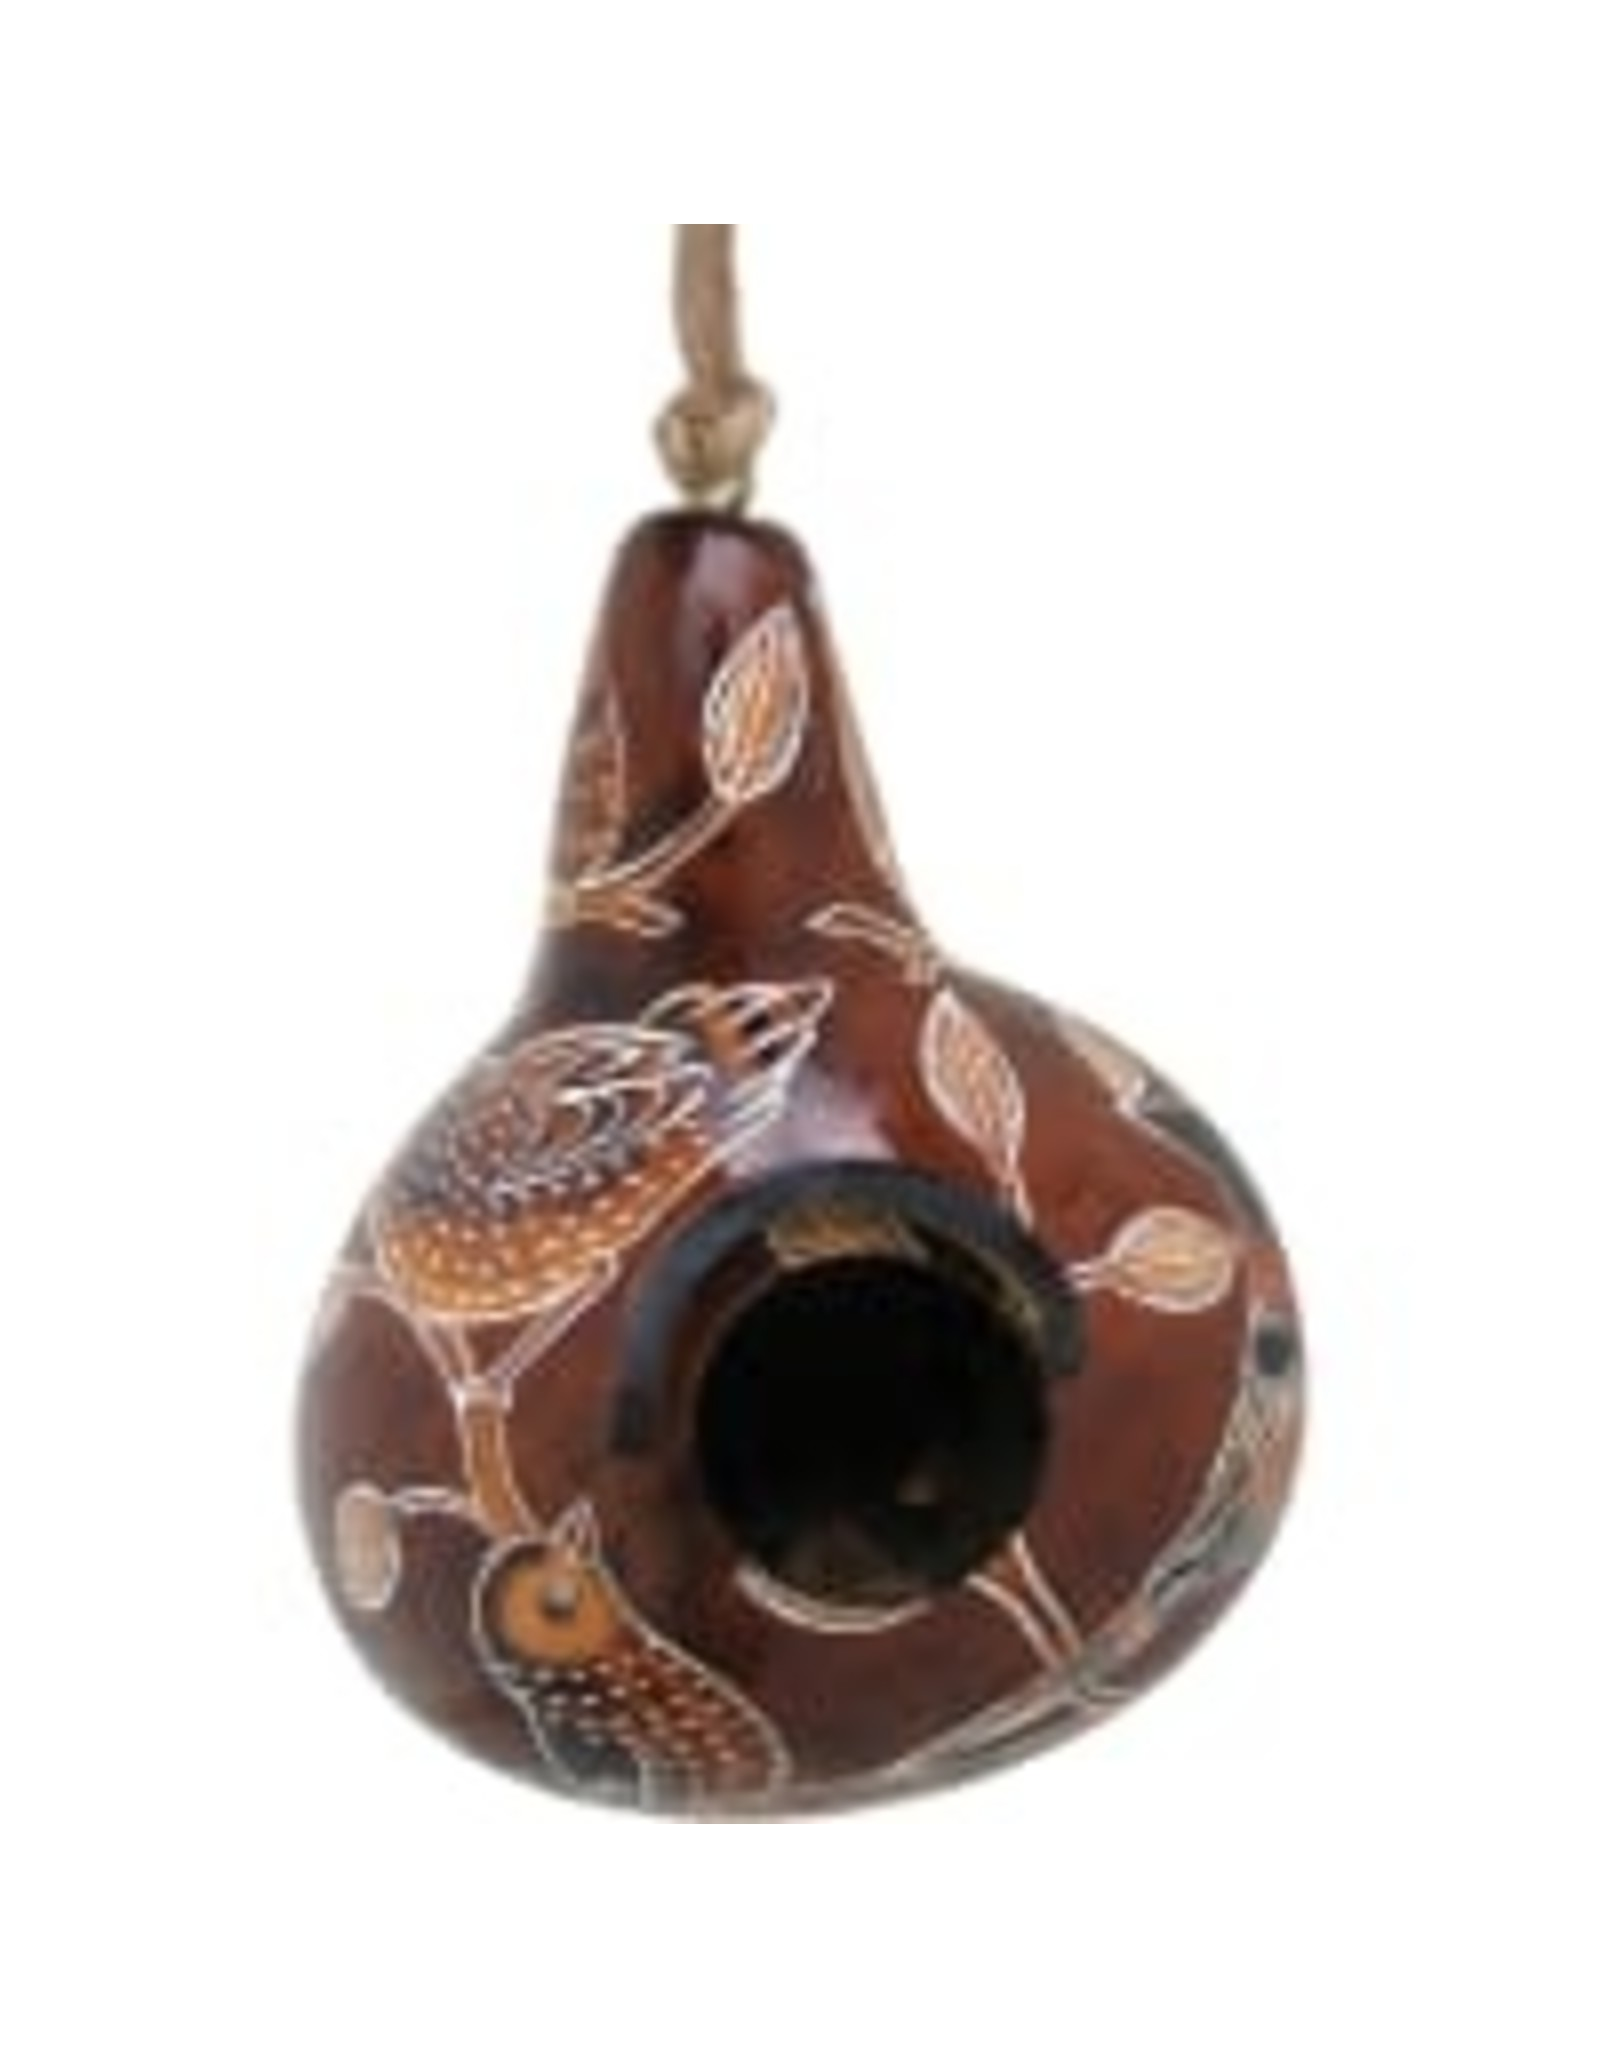 Lucuma Small Gourd Birdhouse, assorted. Peru